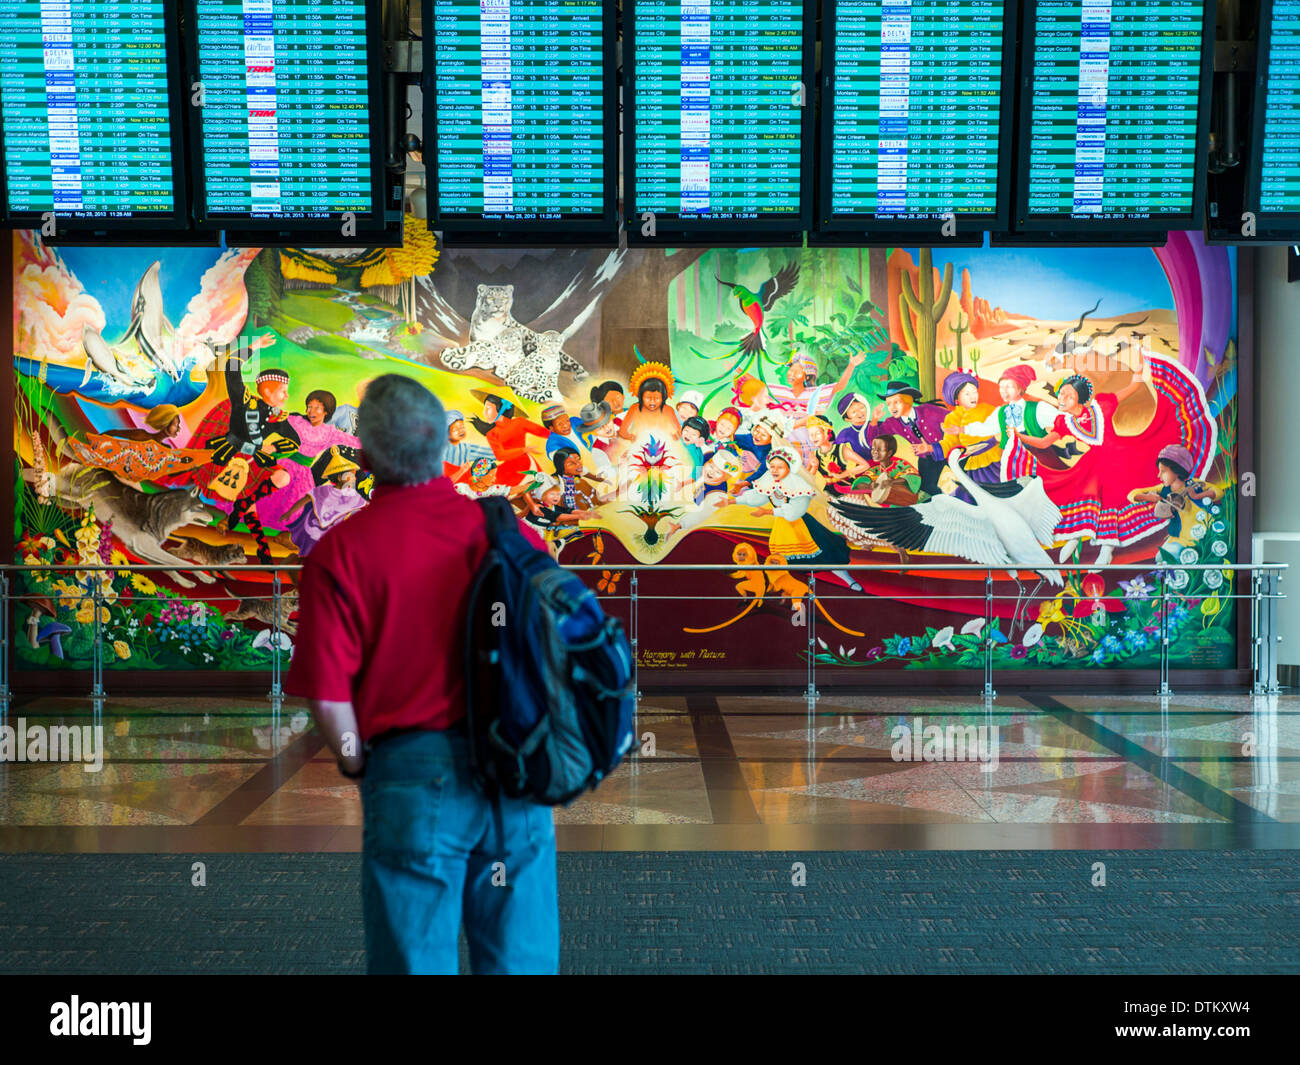 Colorful mural titled 'In Peace & Harmony with Nature', by Leo Tanguma, Denver International Airport, Colorado, USA. - Stock Image